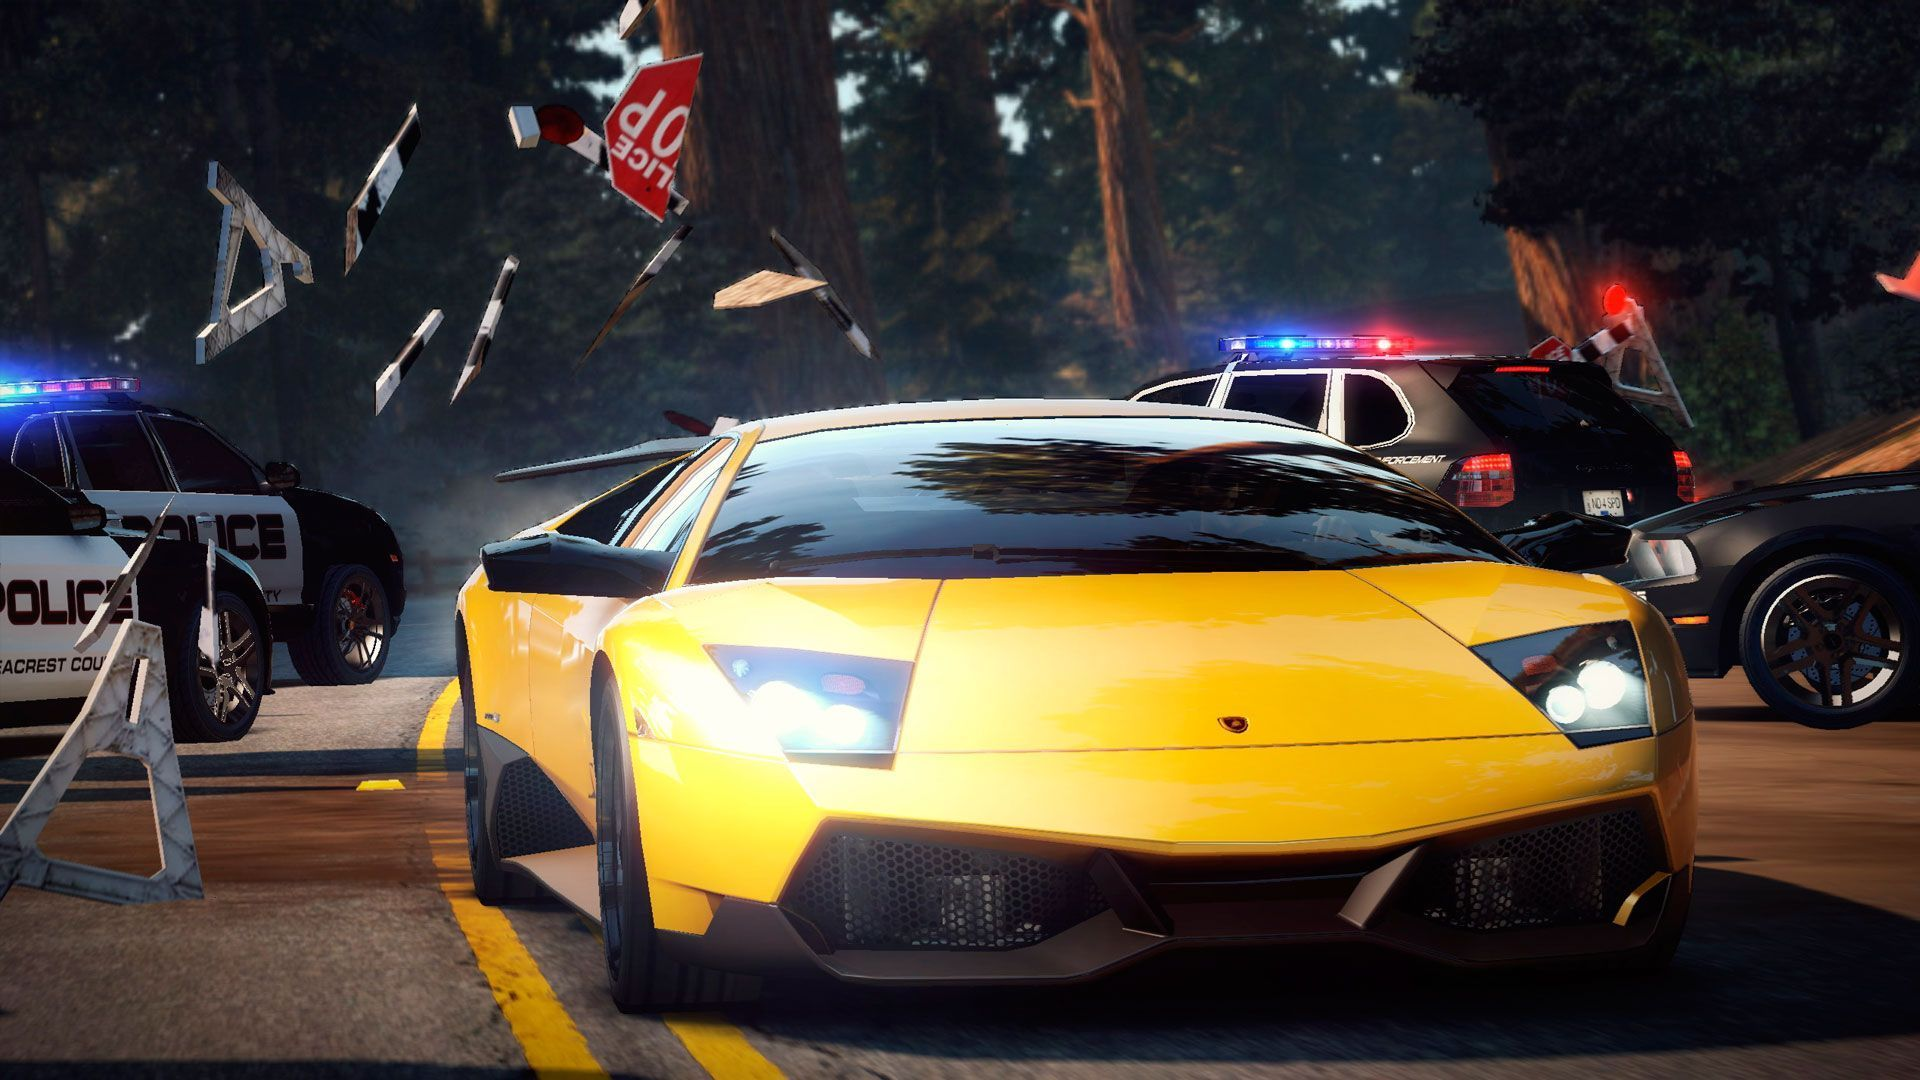 Cool Lambo Hd Wallpapers Hd Wallpapers Need For Speed